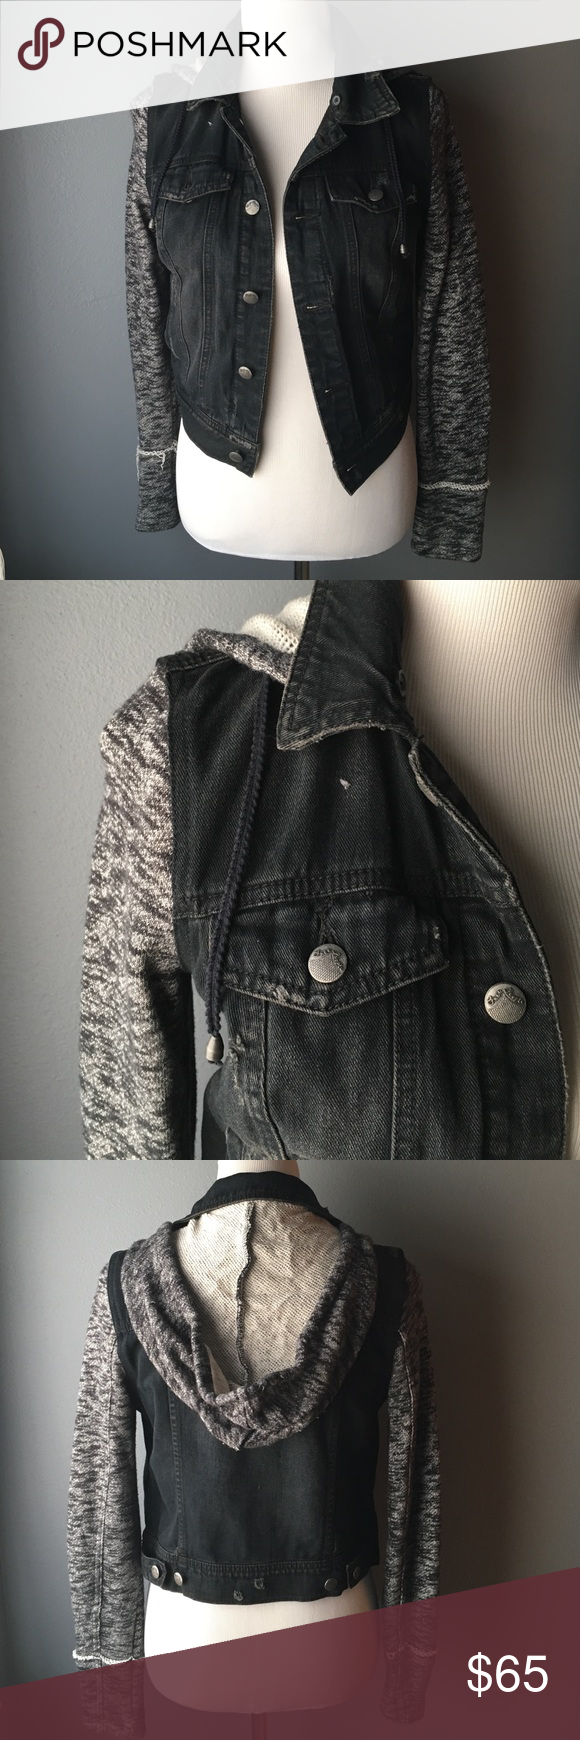 Free People Black Denim Jacket Detachable hood. Detached by buttons. In good condition; hardly worn. Antiqued silver hardware. Faded black denim wash with black heather jersey sleeves and hood. Side pockets and button chest pockets. Two inside pockets. Distressed look. Free People Jackets & Coats Jean Jackets